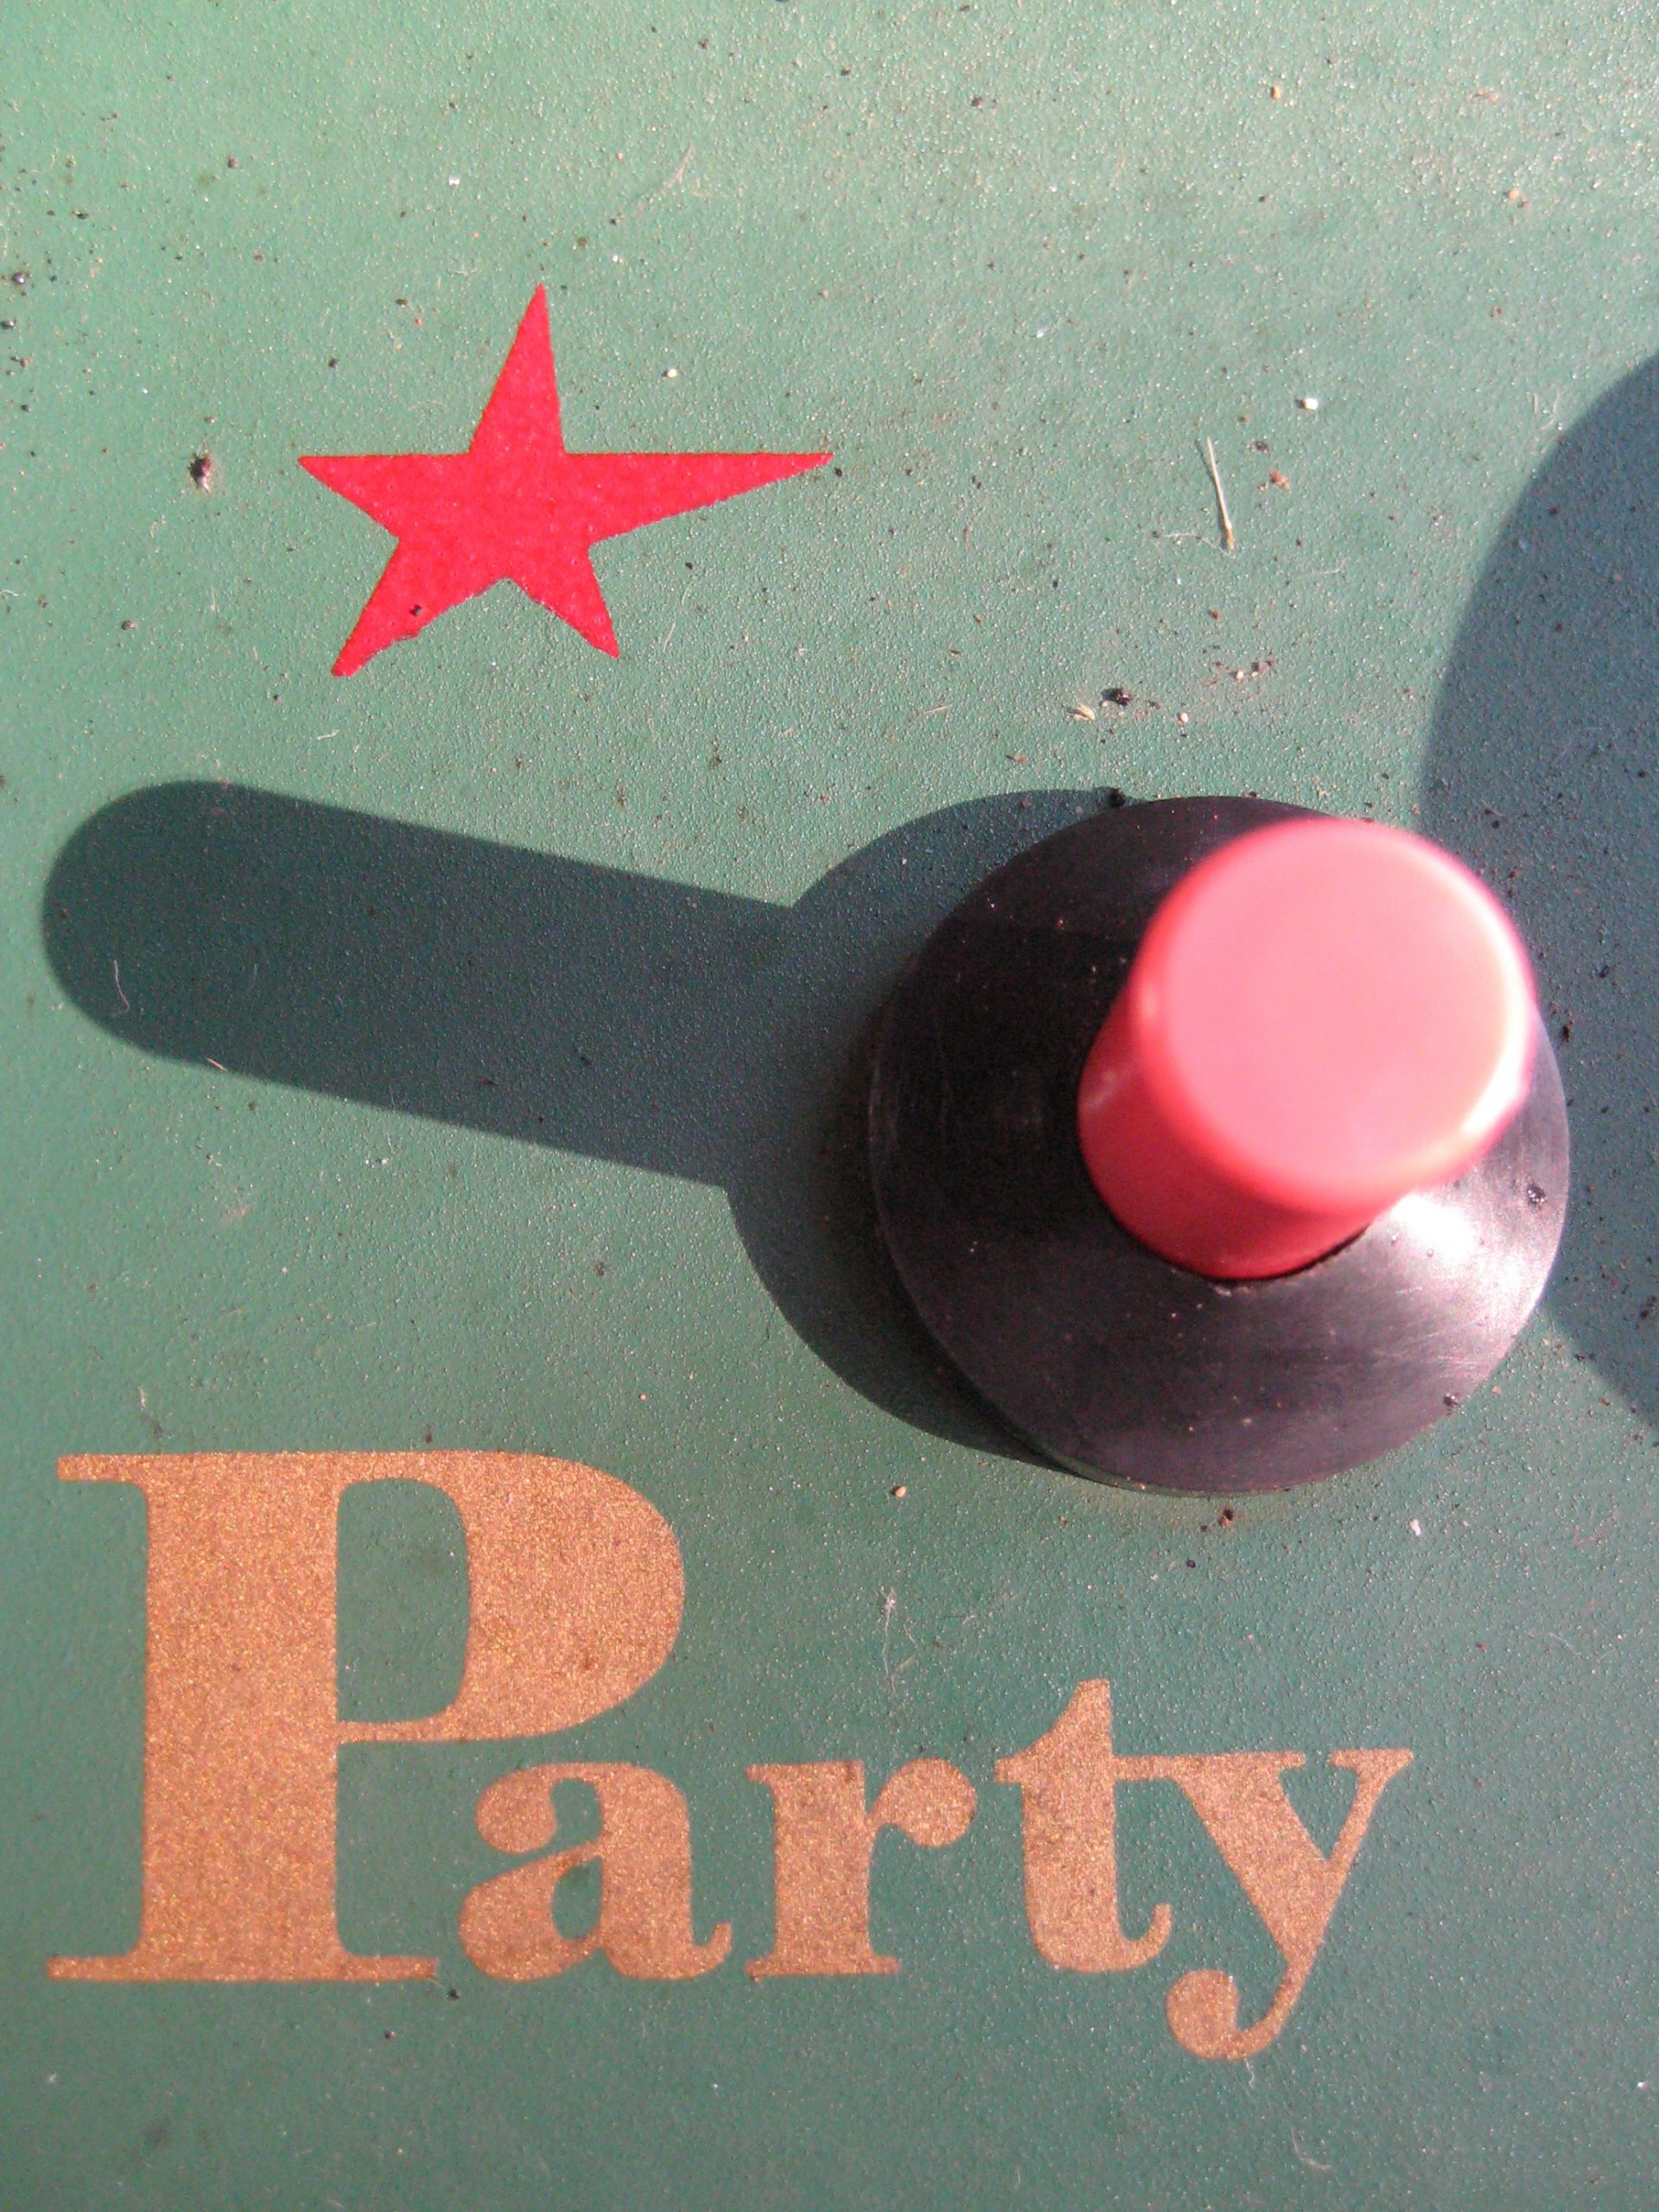 Button with the word 'party' next to it